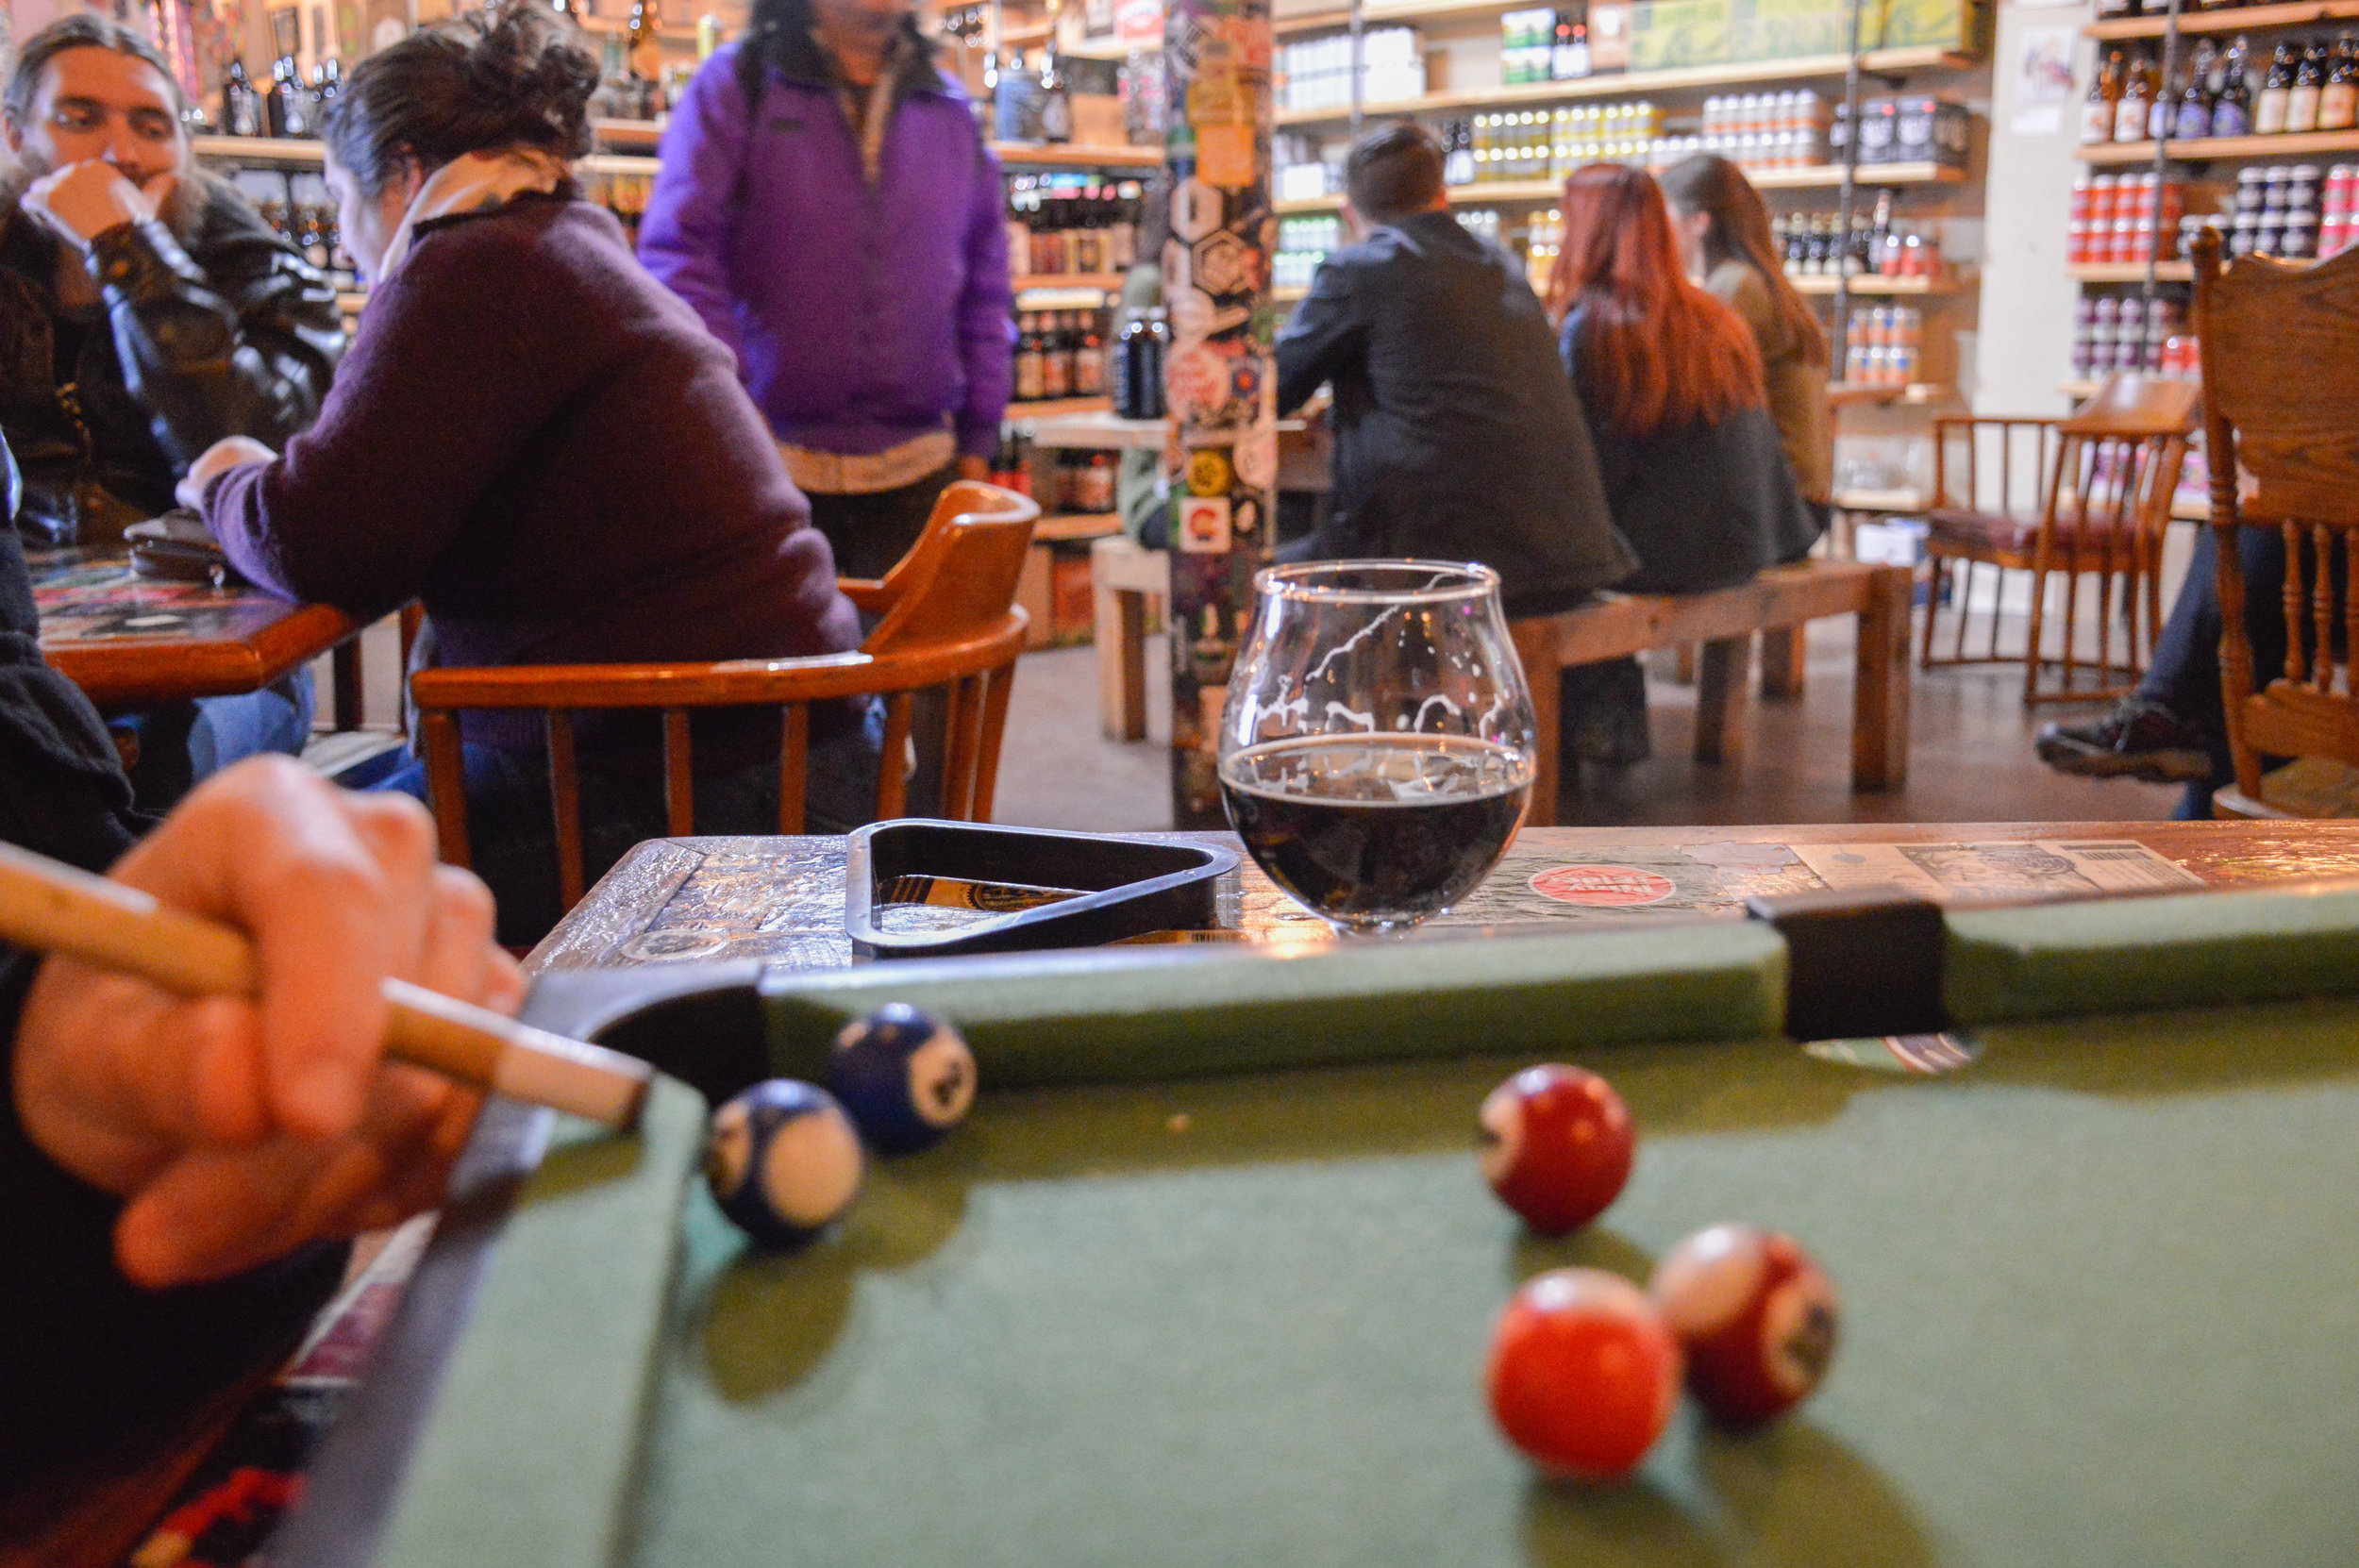 Playing some pool at The Bearded Monk's Stout and Shout IV